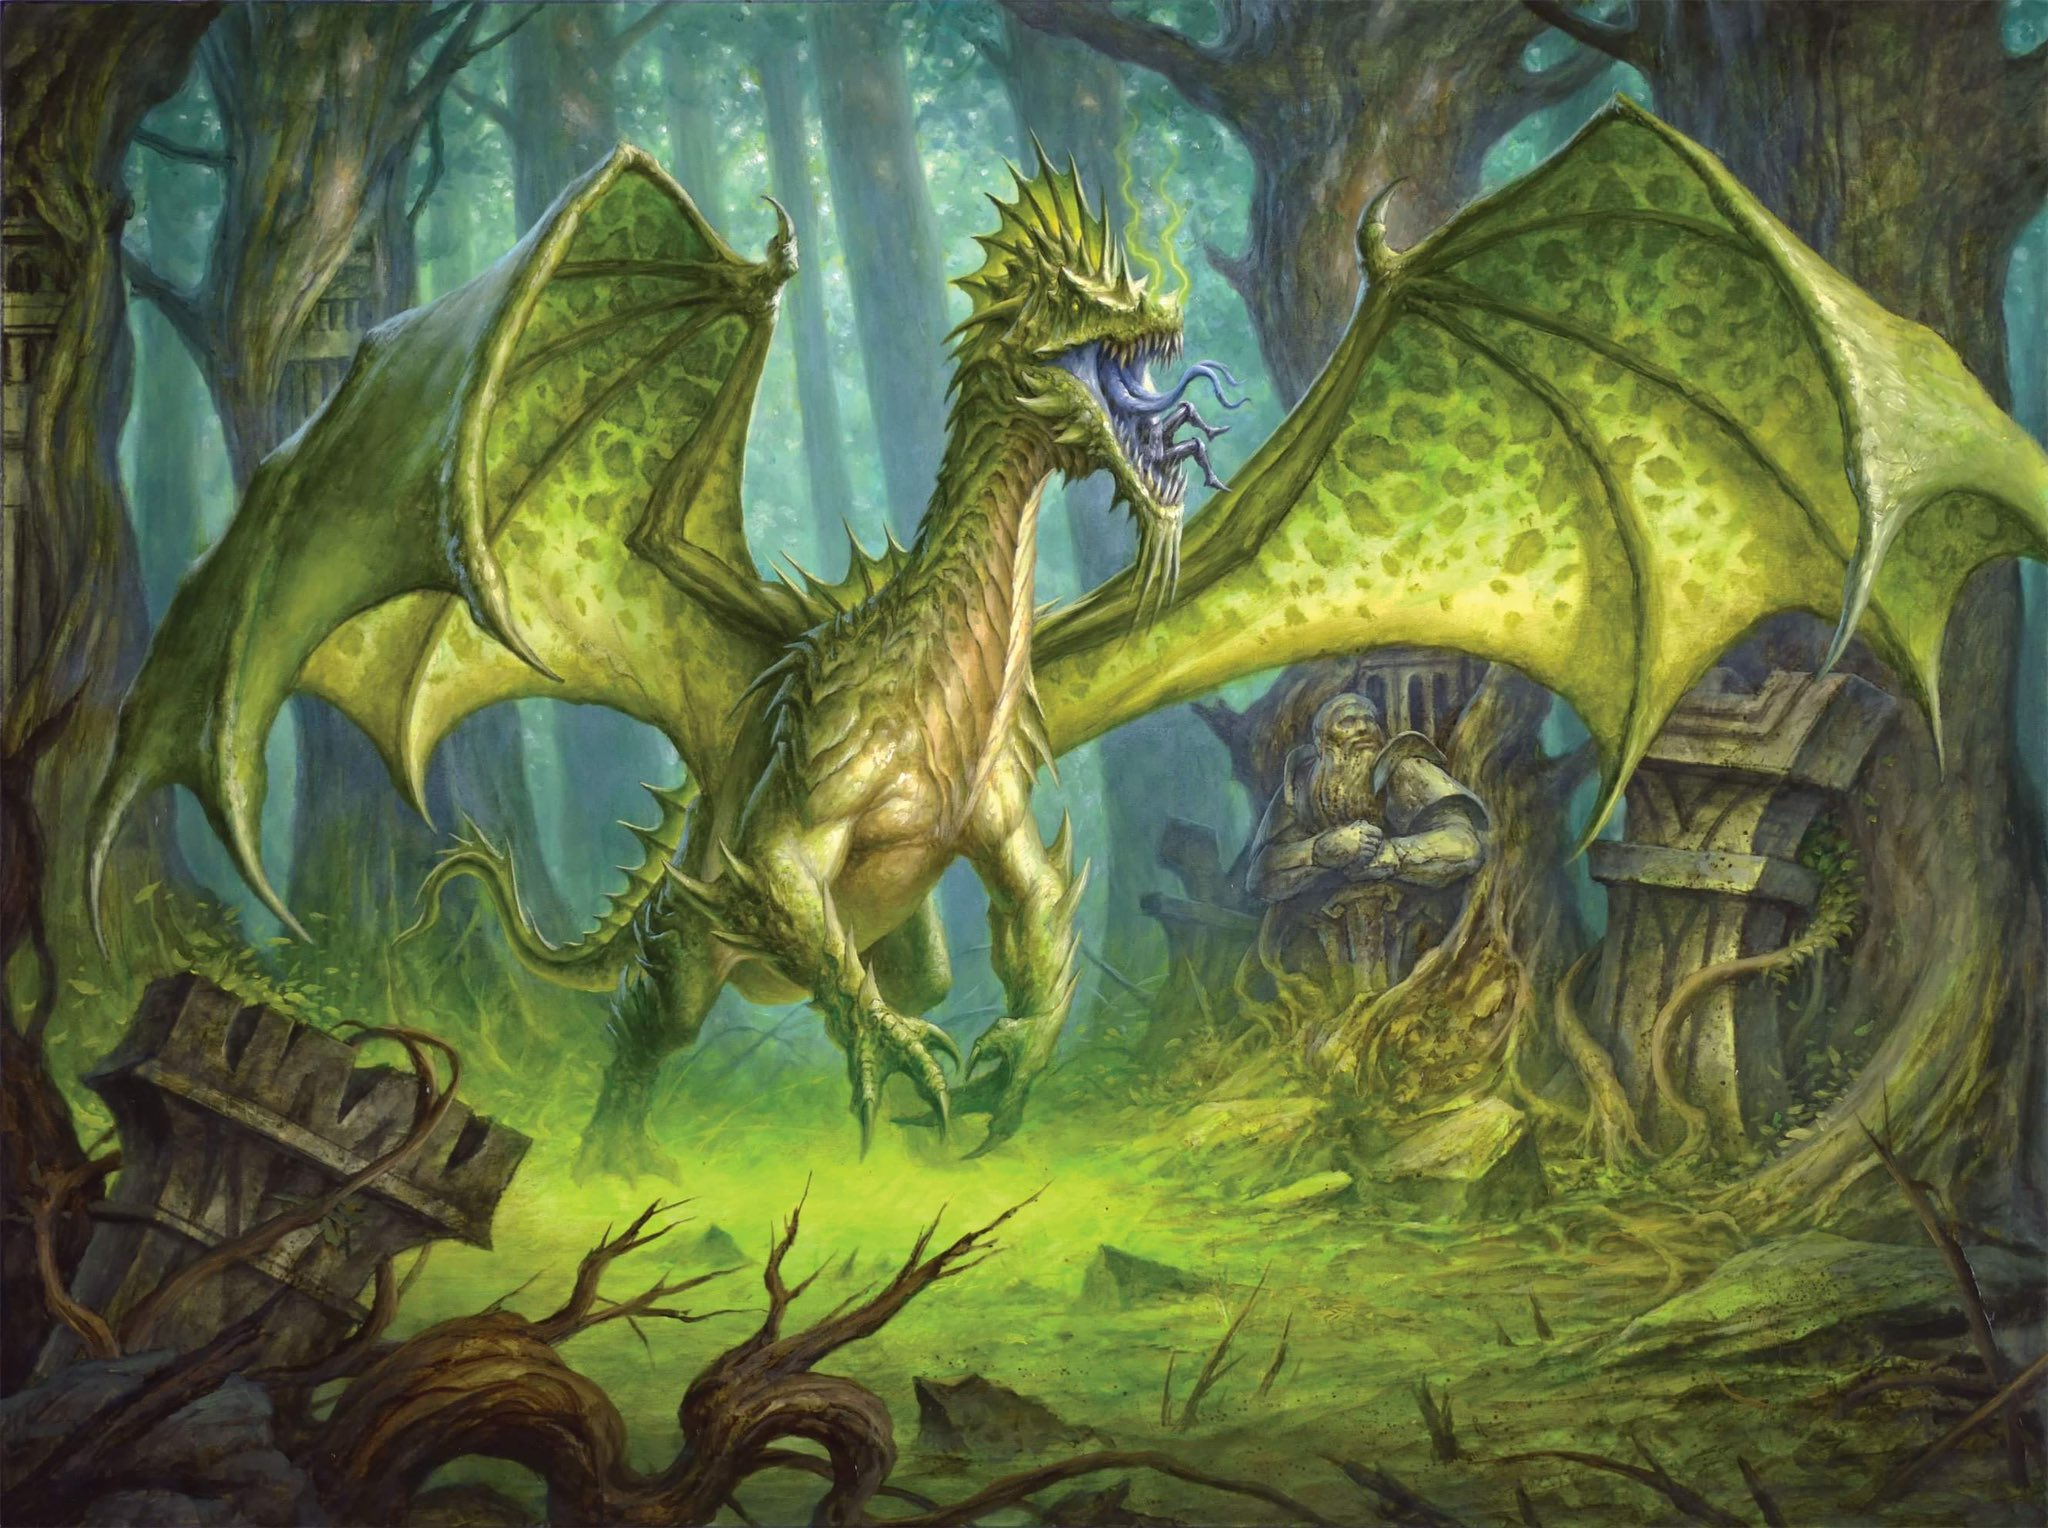 Adventures In The Forgotten Realms Hits Magic Online Today